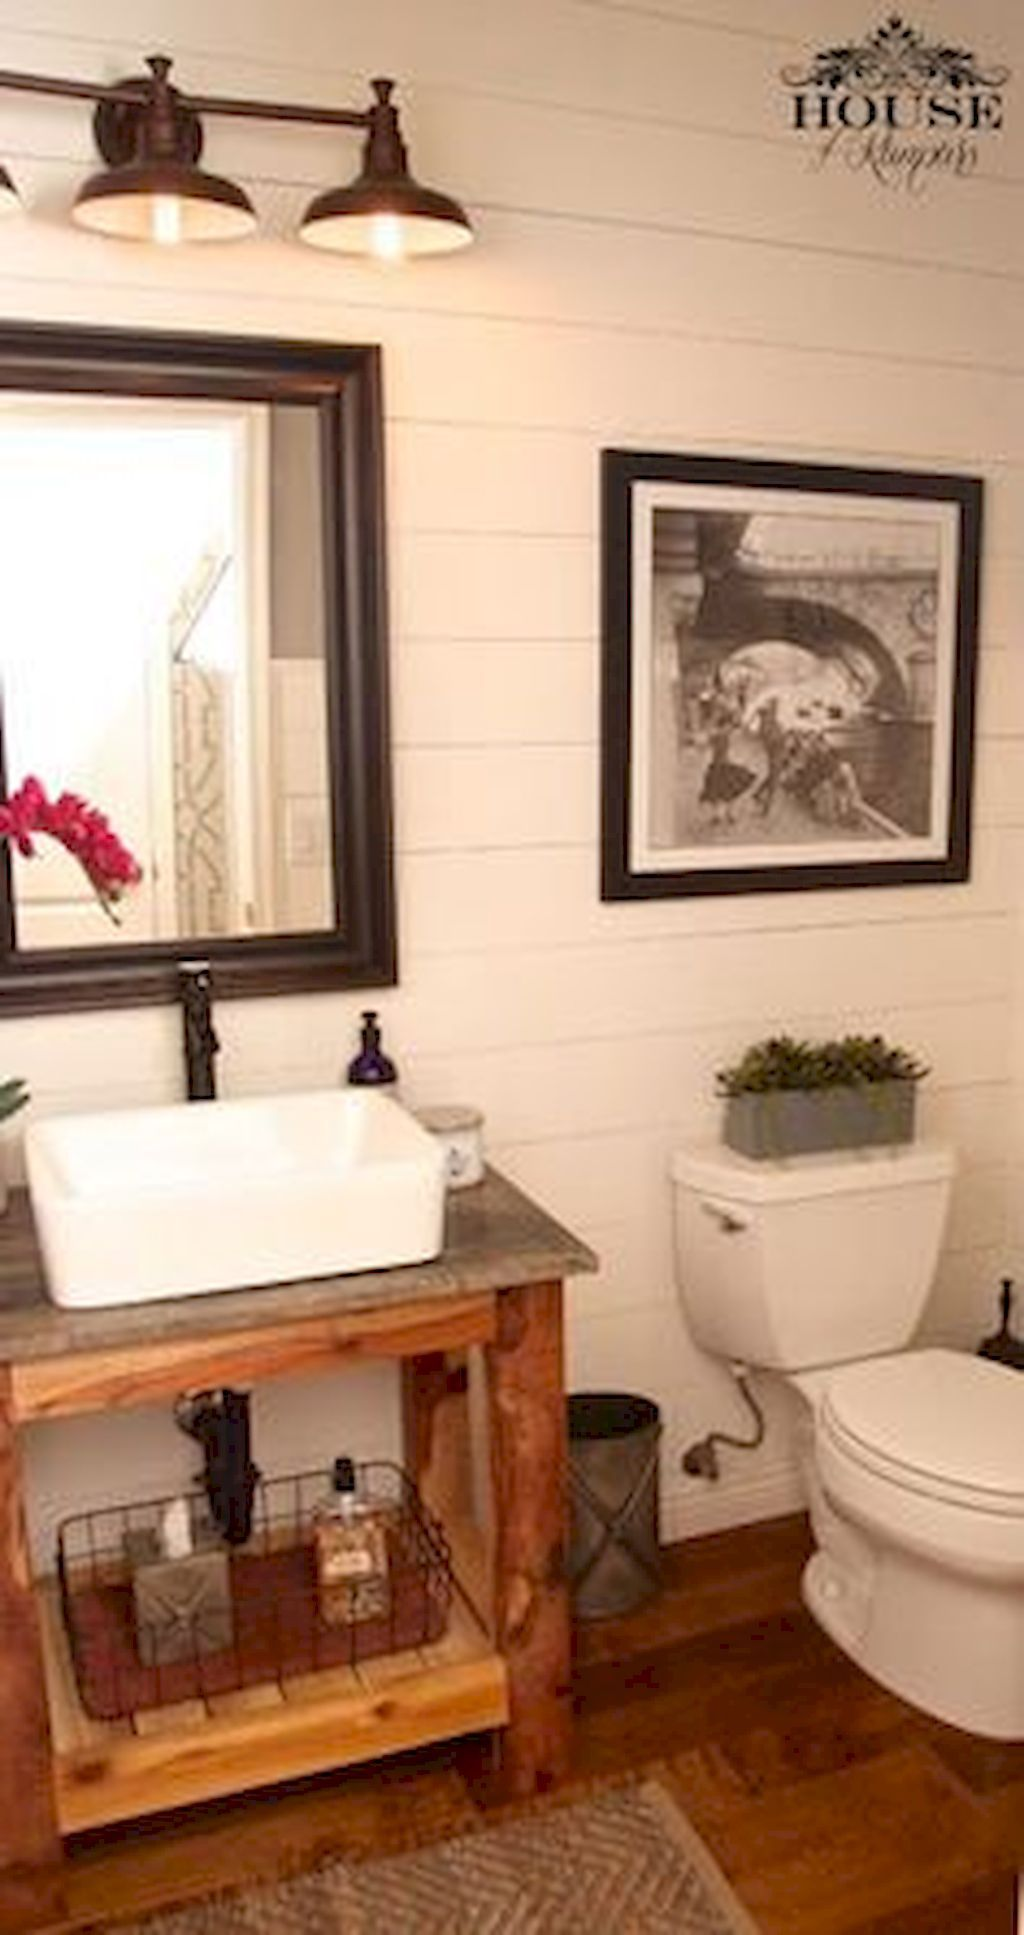 60 Cool Farmhouse Powder Room Design Ideas With Rustic Rustic